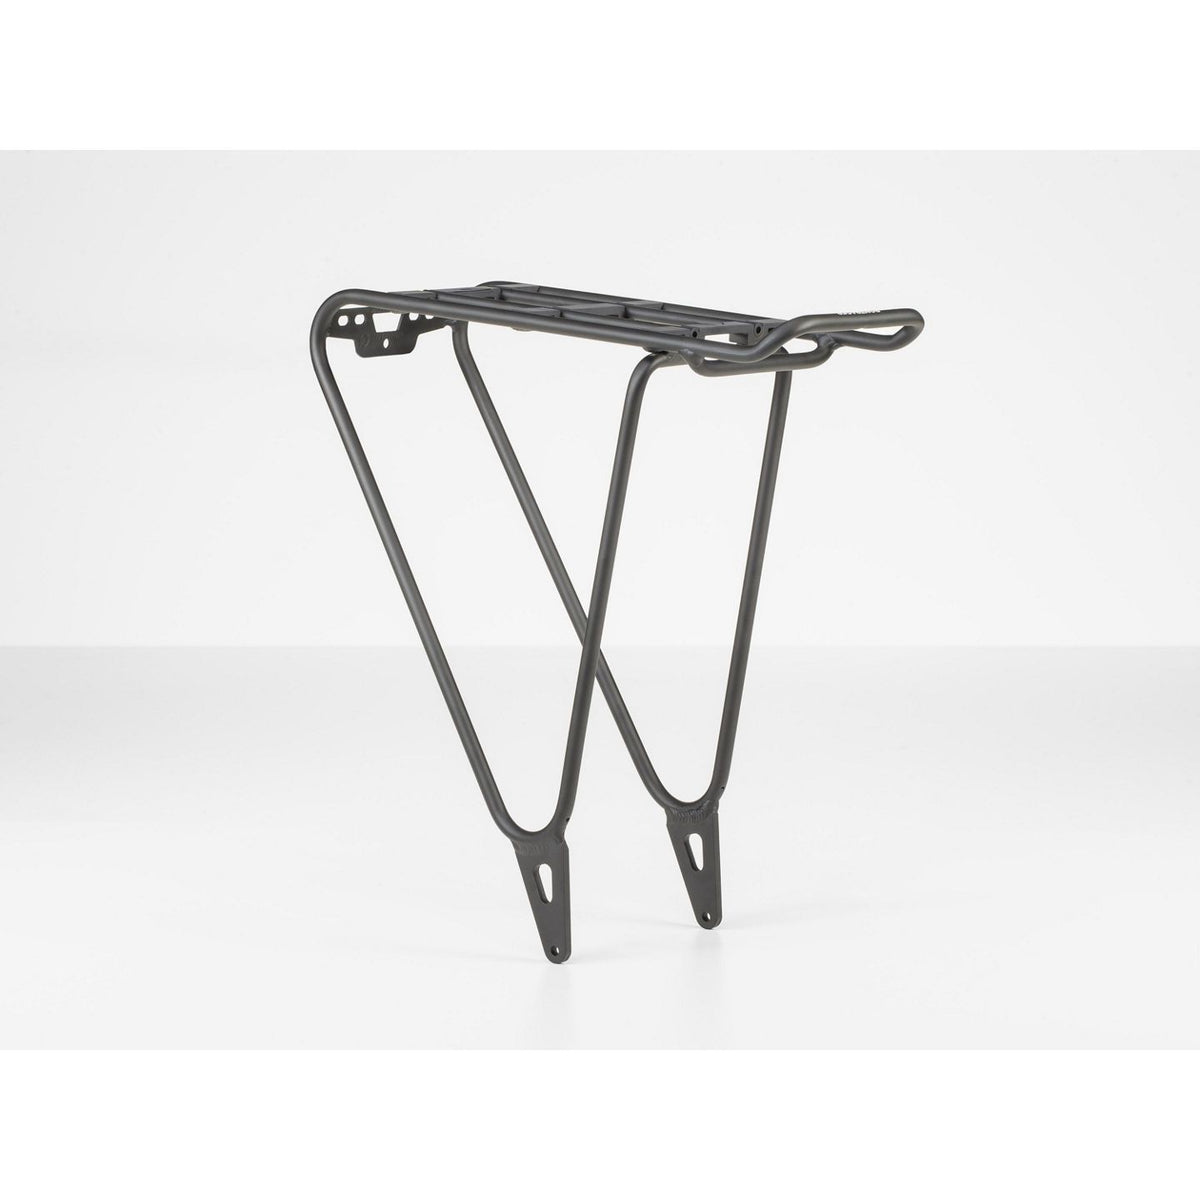 Bontrager BackRack MIK Rack Black Small